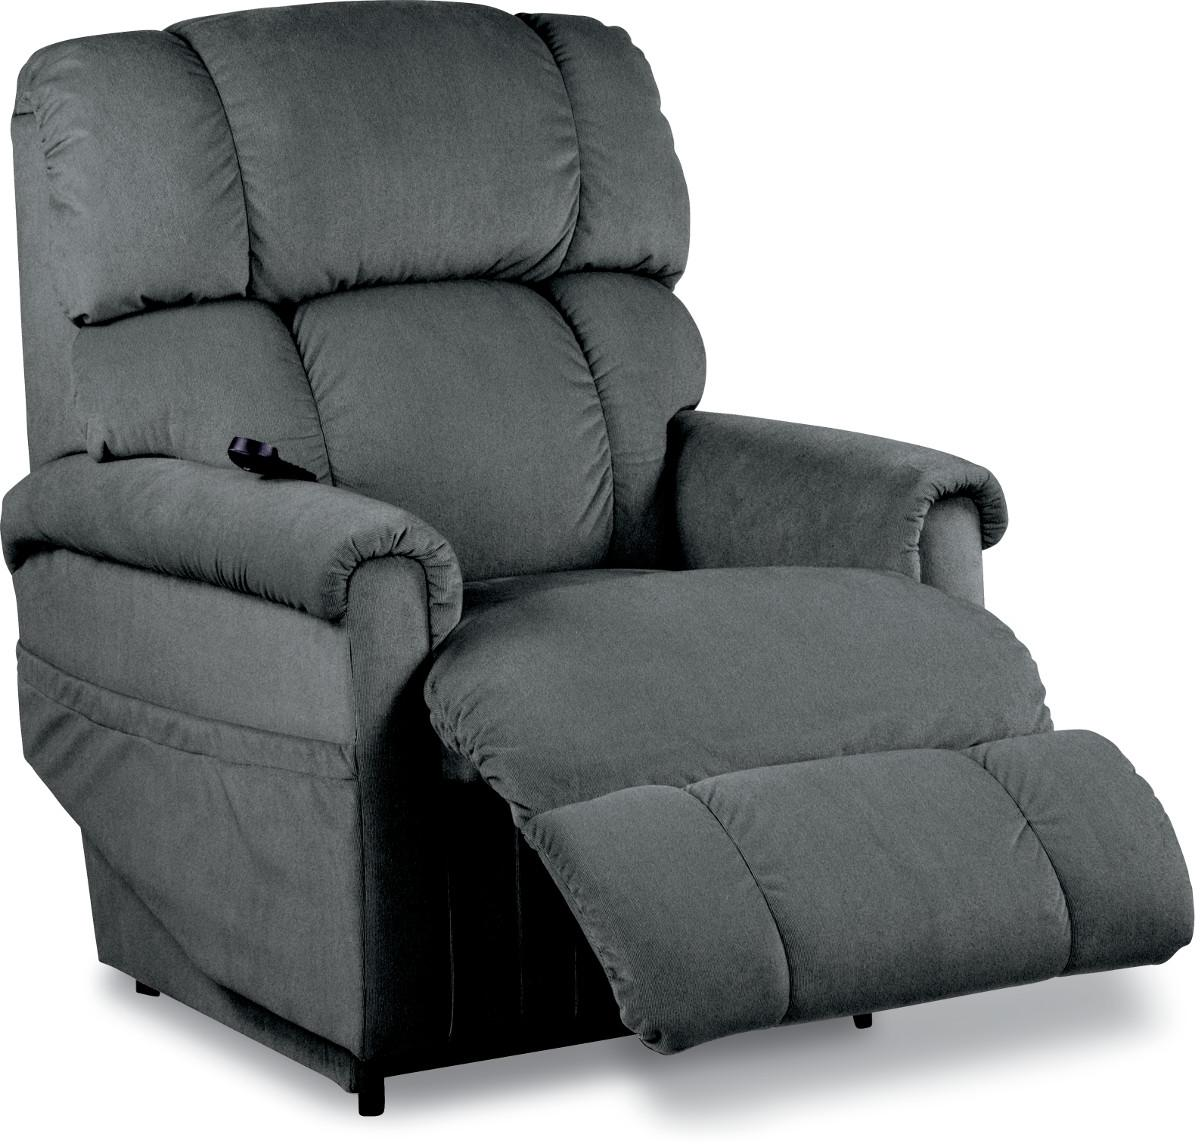 Platinum Luxury Lift Power Recline Xr Recliner With 6